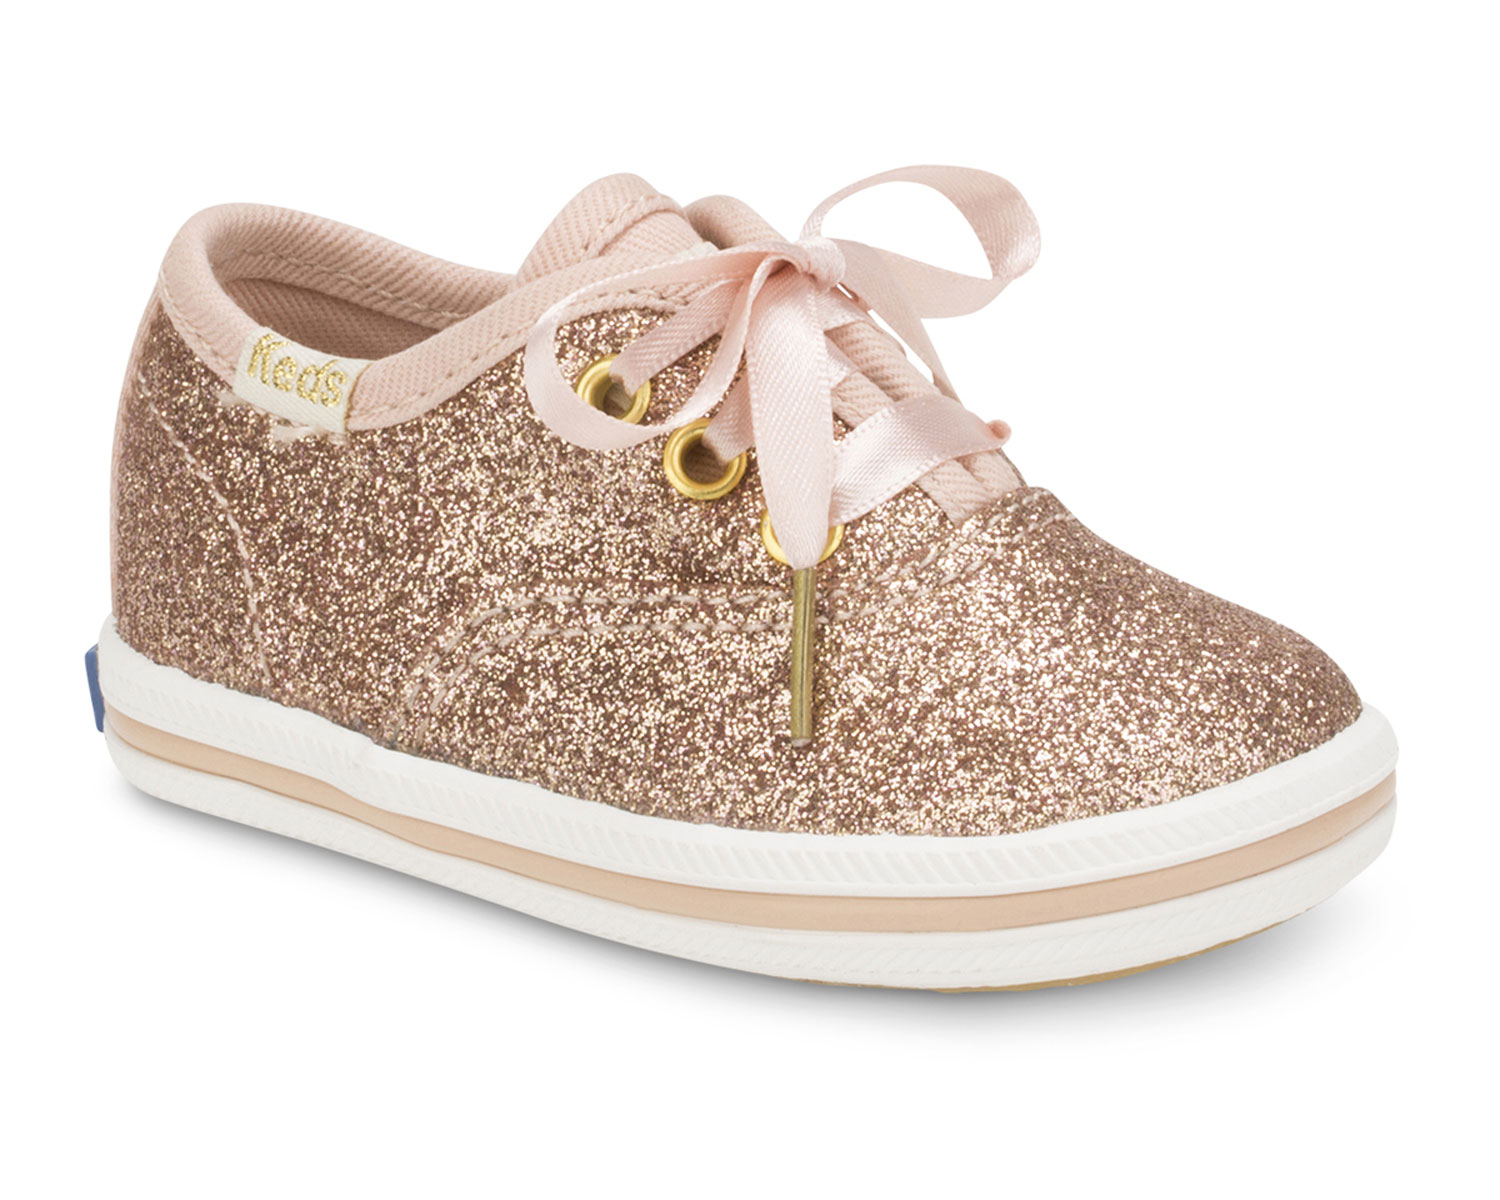 Kate Spade And Keds Also Collaborated To Create Adorable Wedding Sneakers For Flower Girls